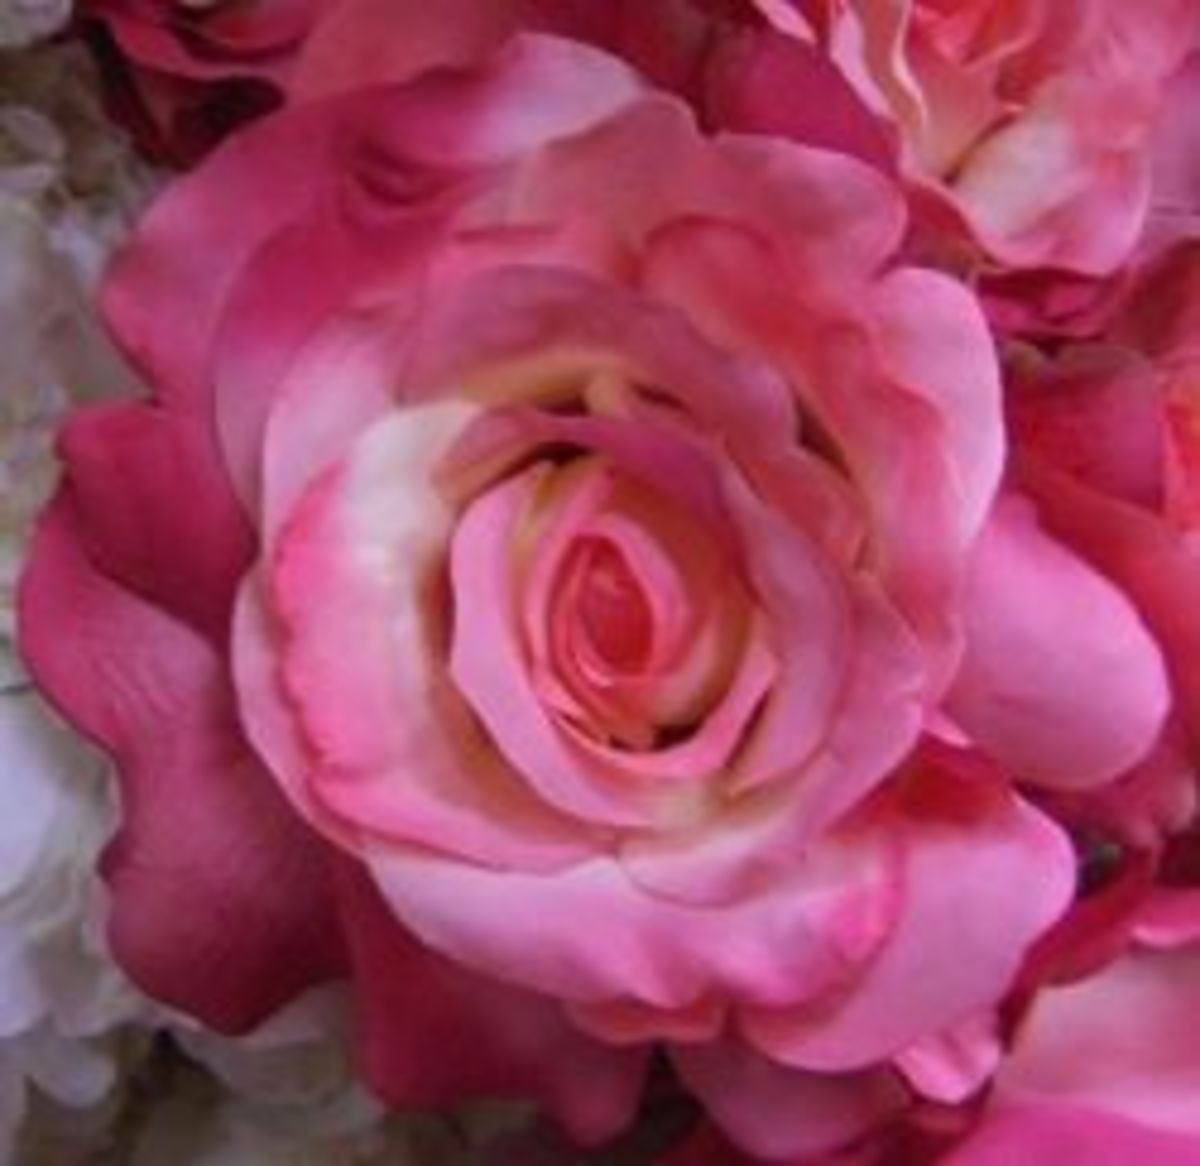 A lovely artificial pink rose in full bloom